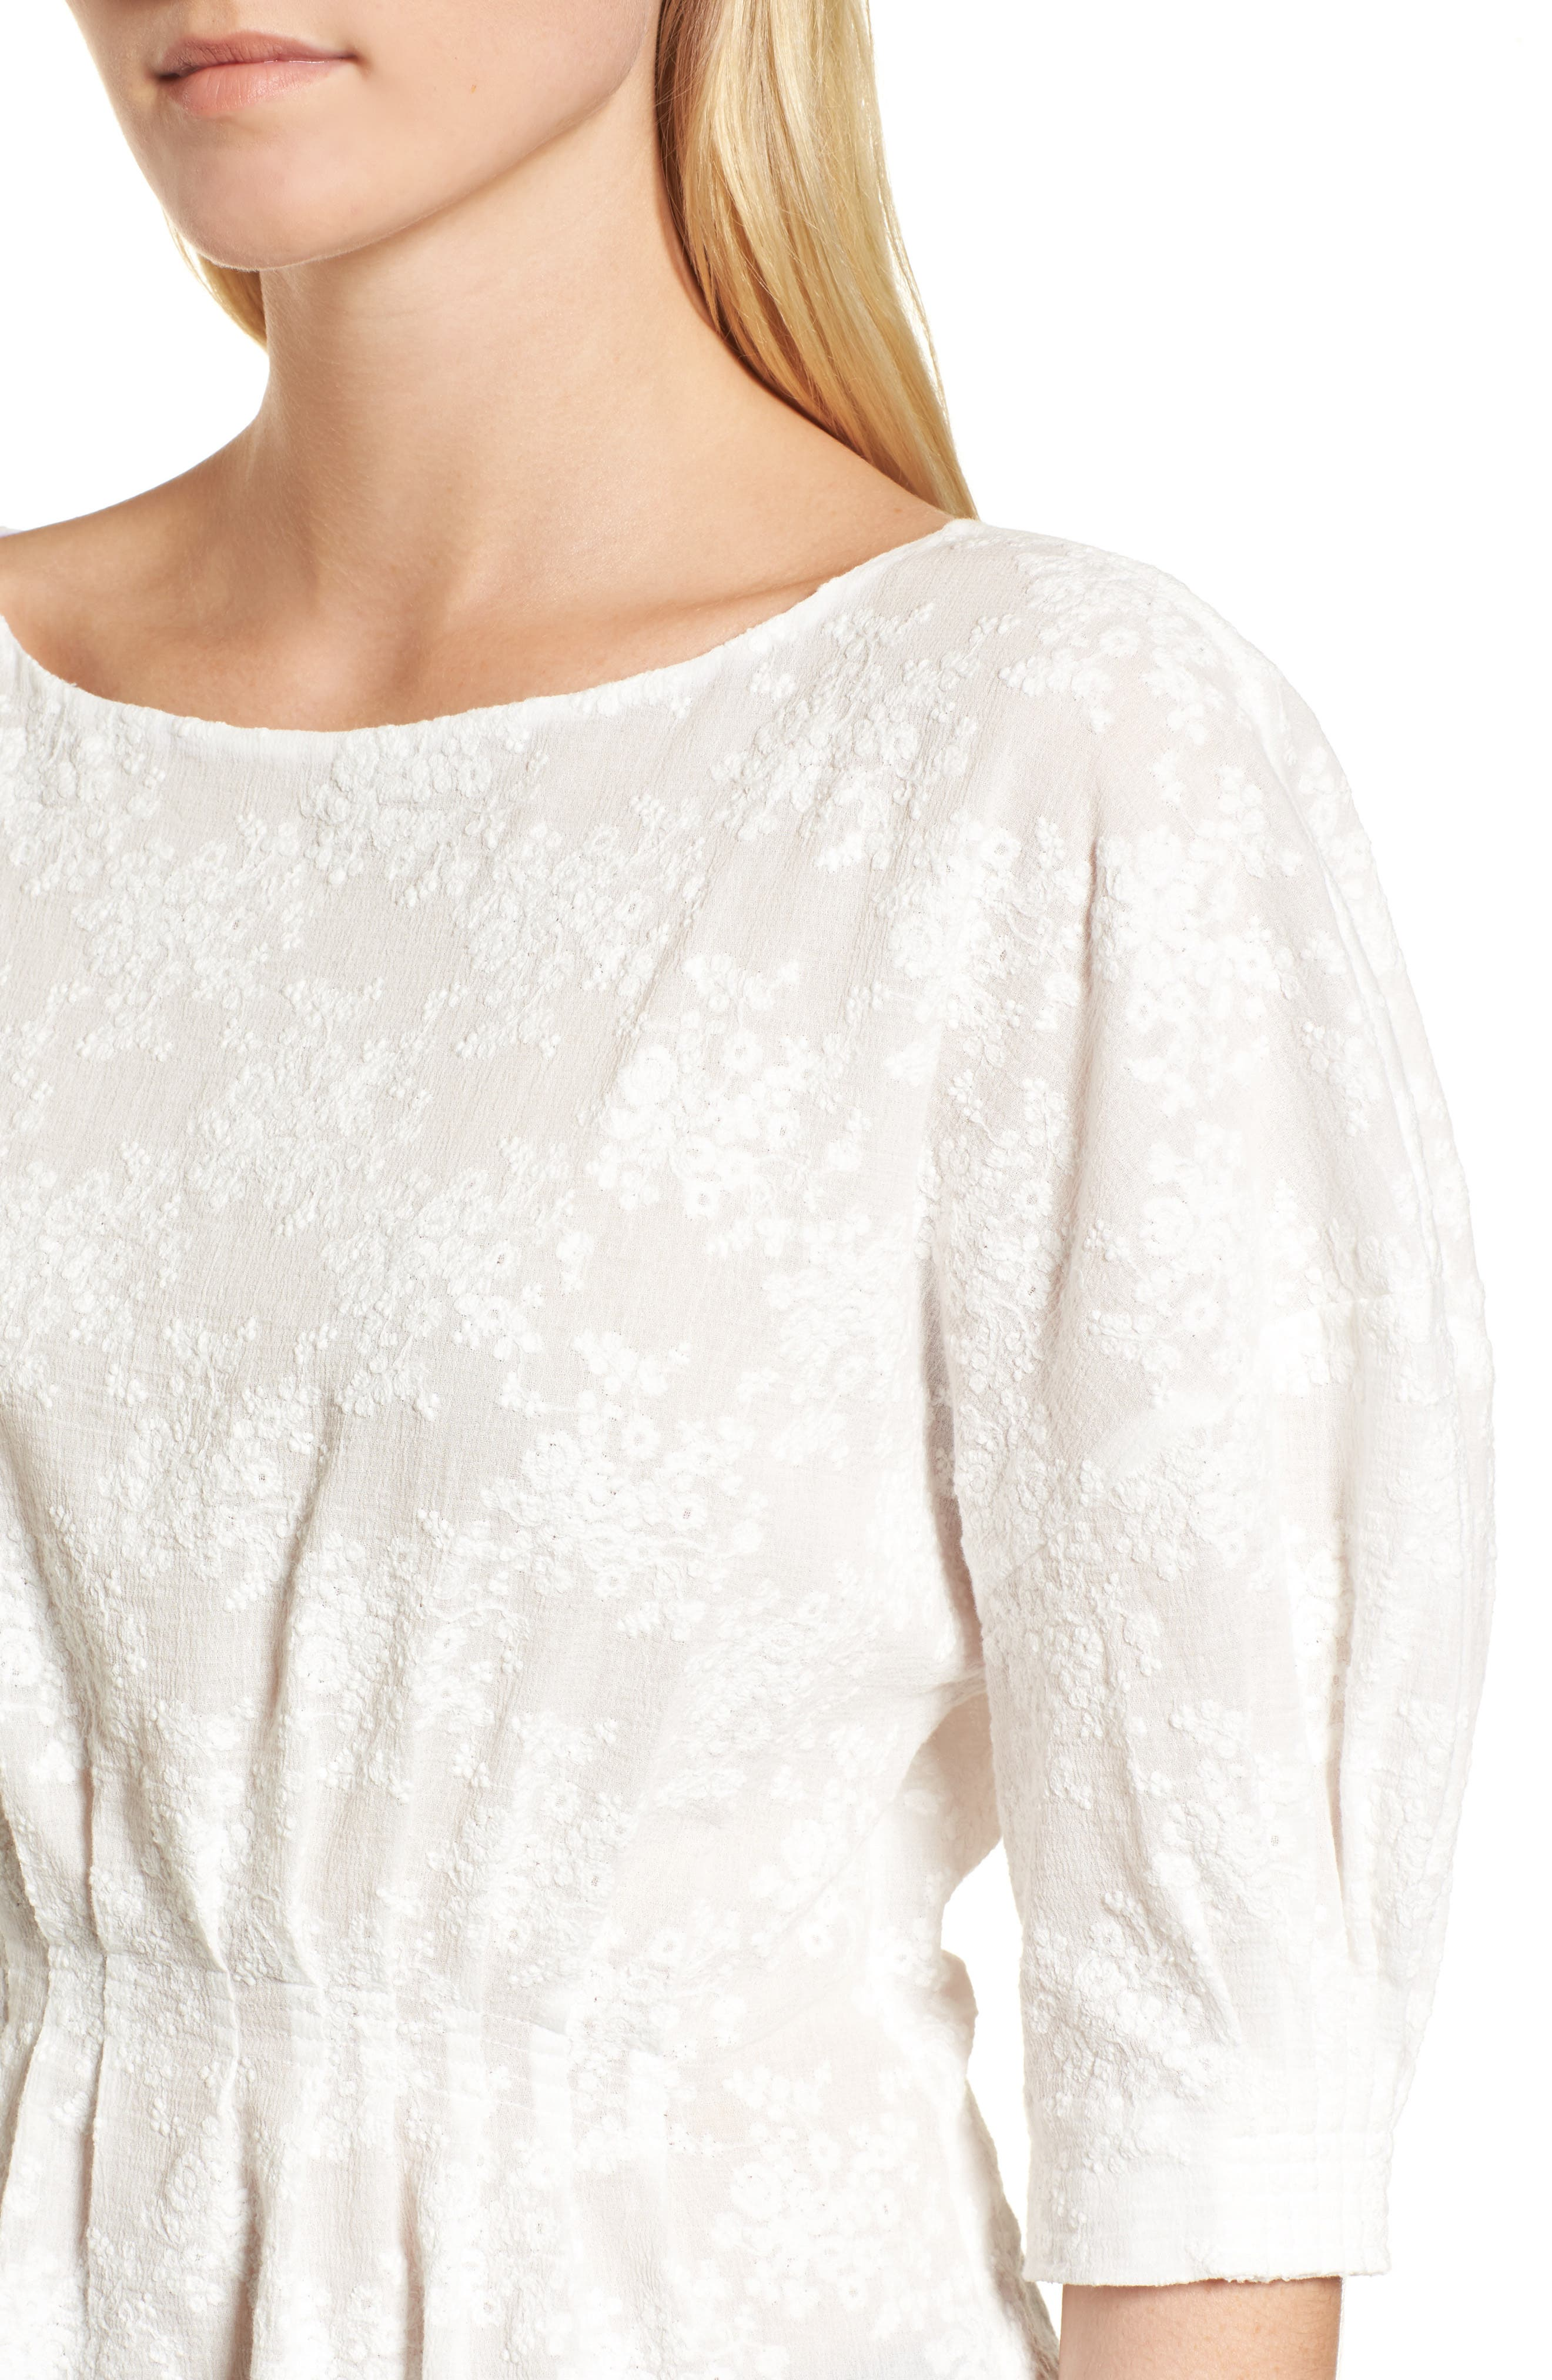 NORDSTROM SIGNATURE, Embroidered Tucked Top, Alternate thumbnail 4, color, 100